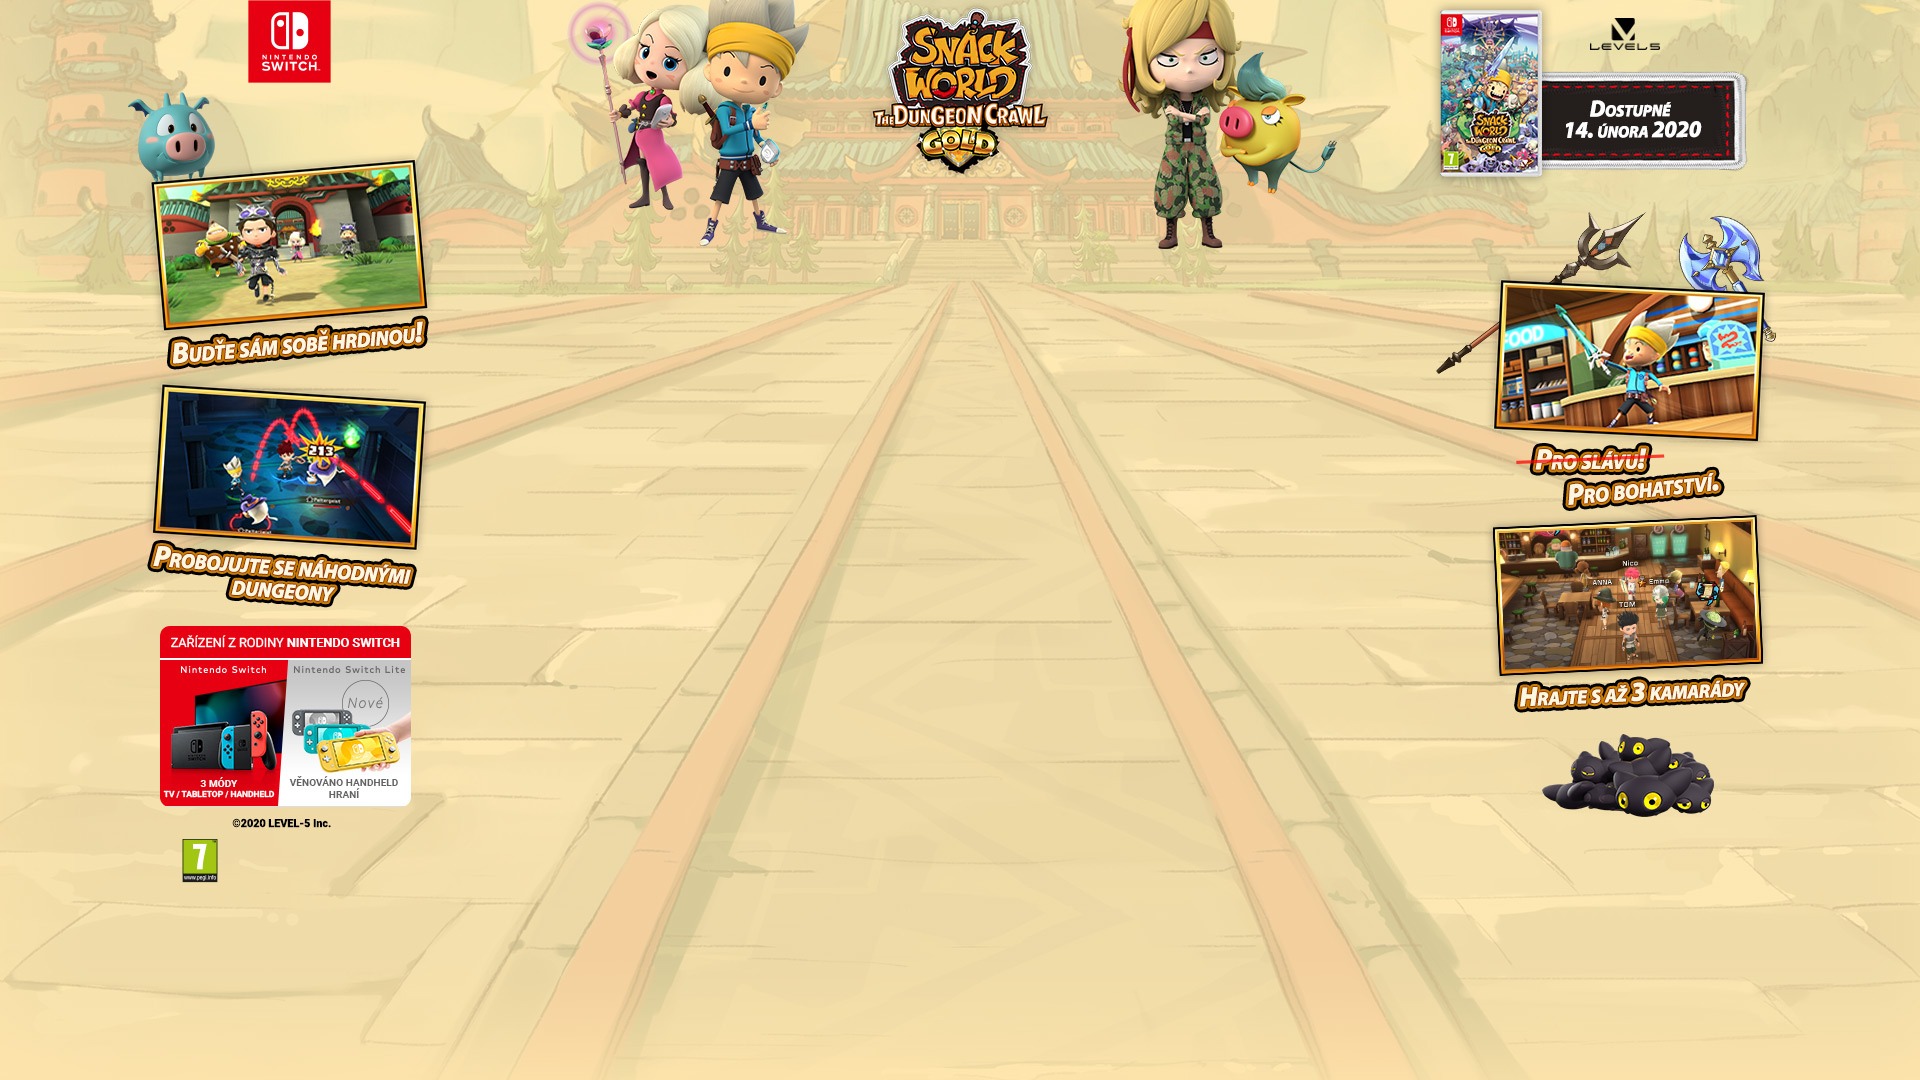 NINTENDOSHOP Snack World: The Dungeon Crawl